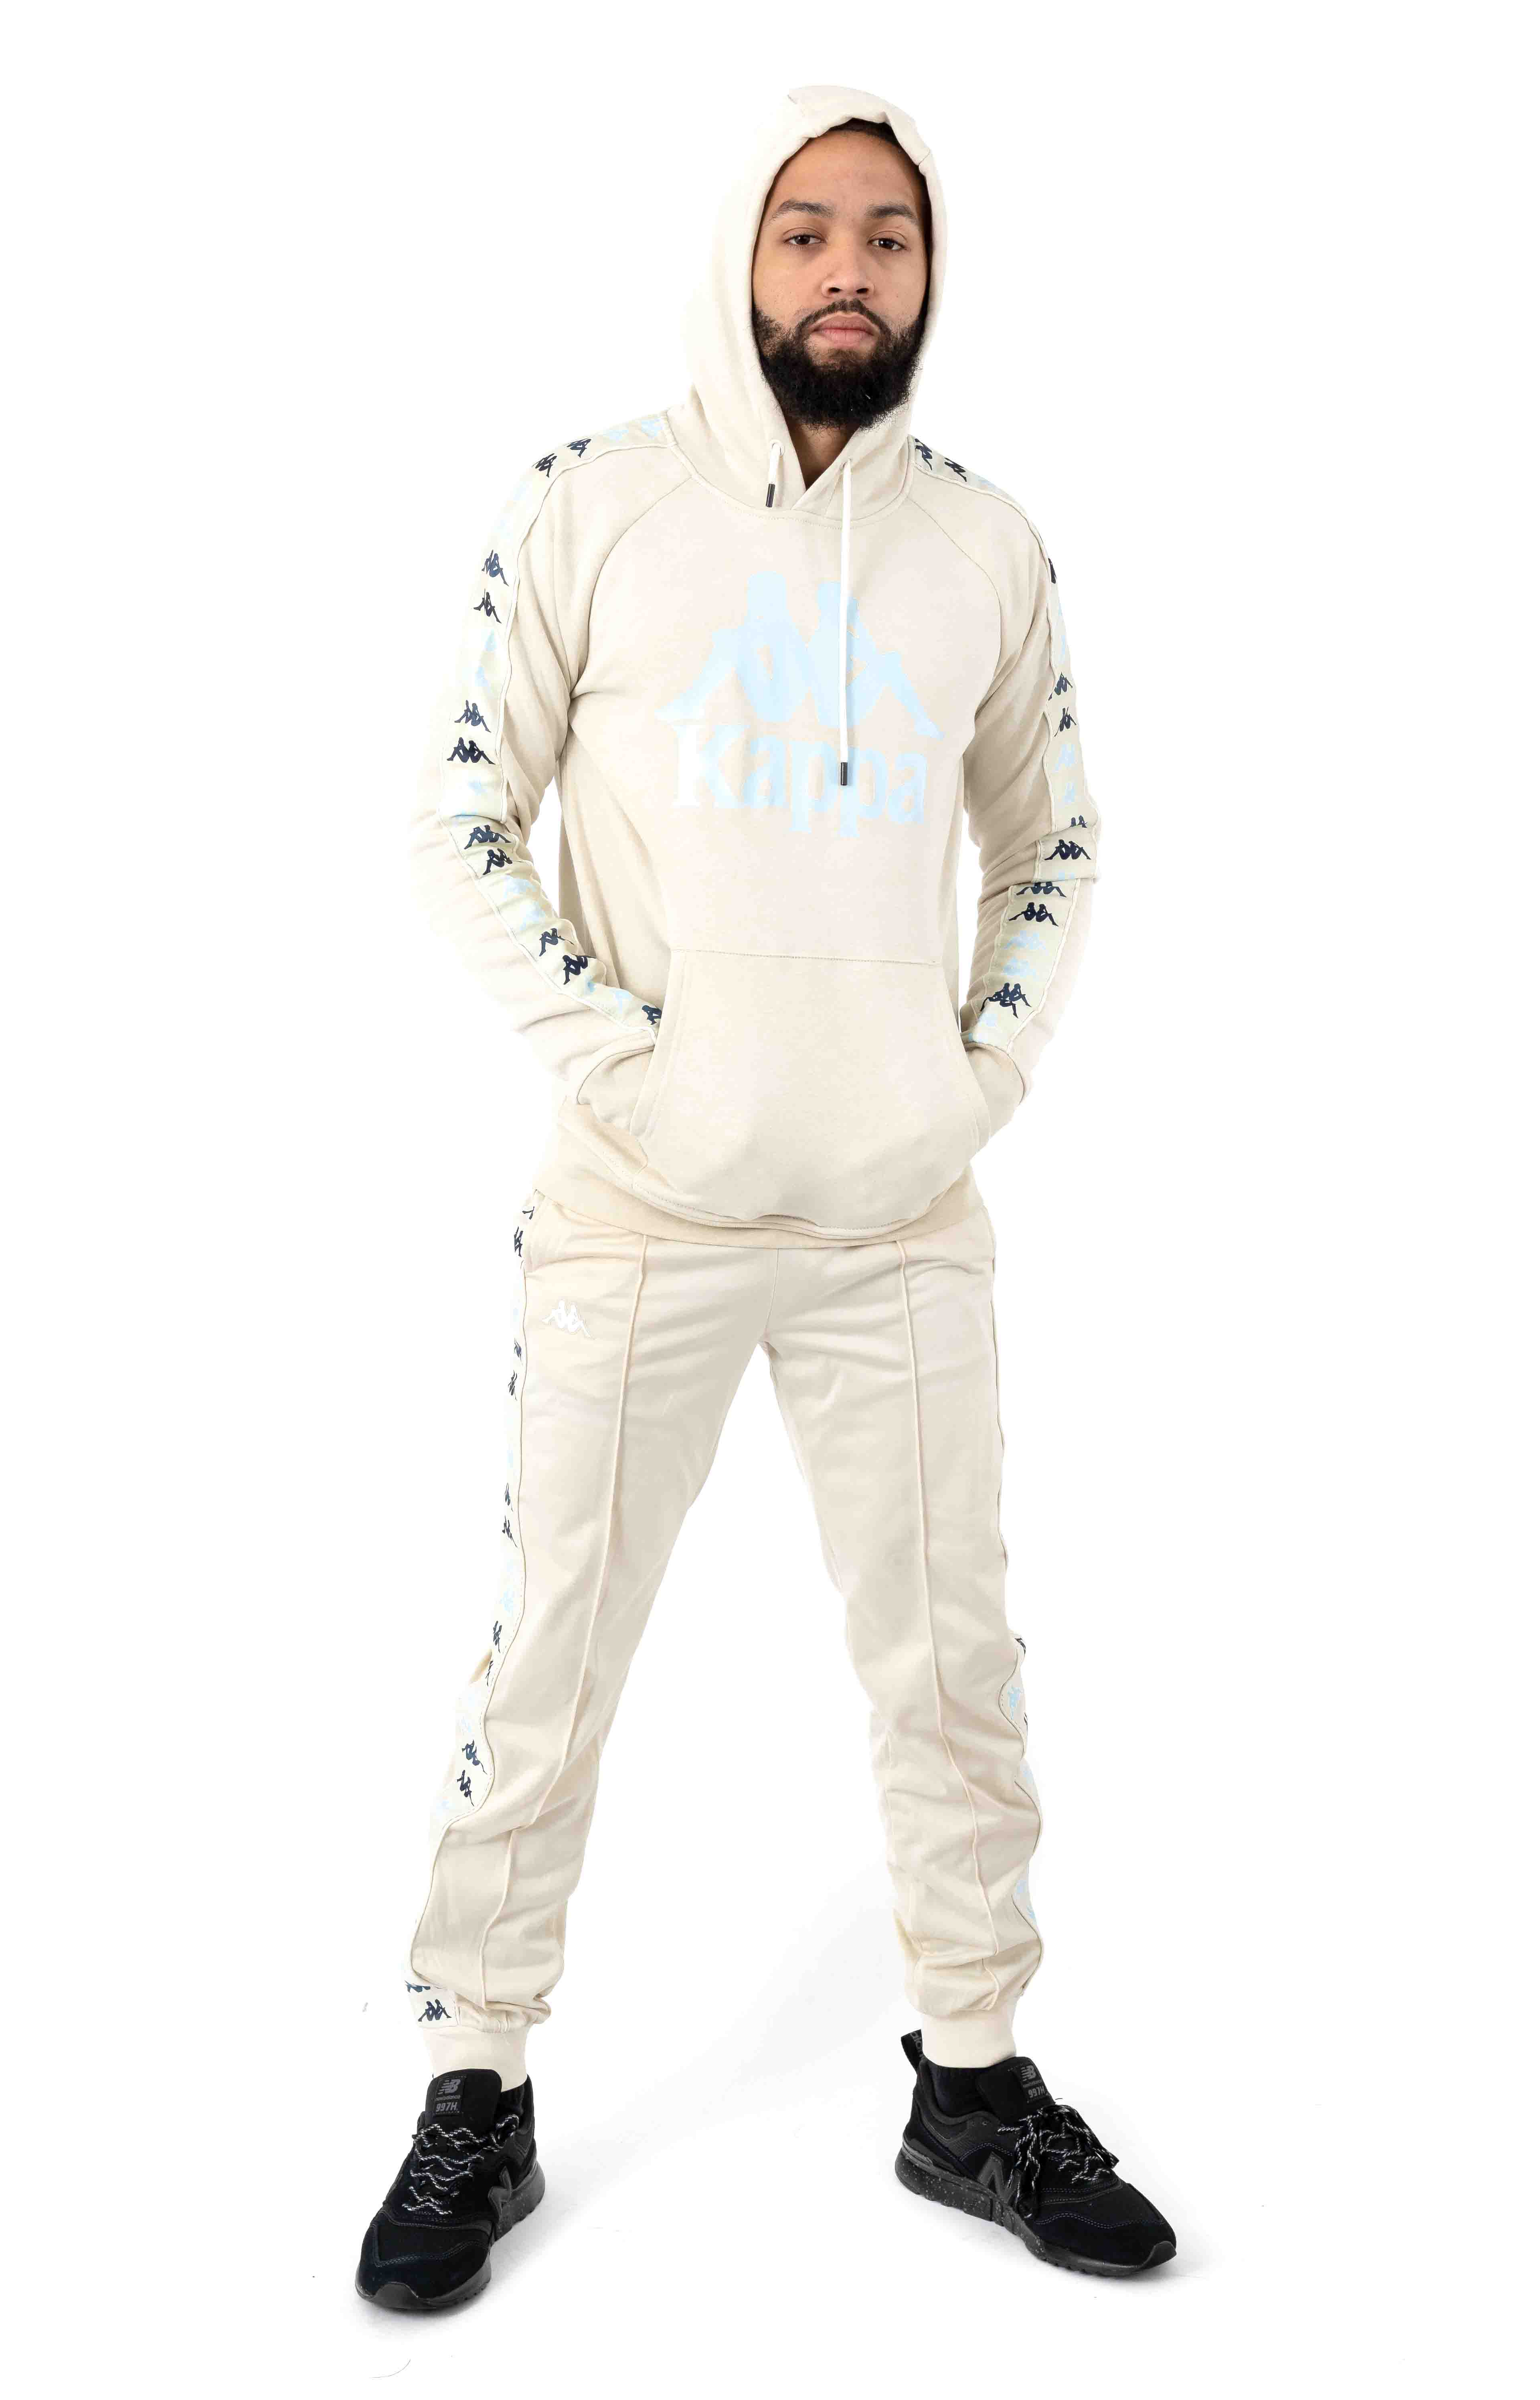 222 Banda Dinto Pullover Hoodie - White Egg/Illusion Blue 4